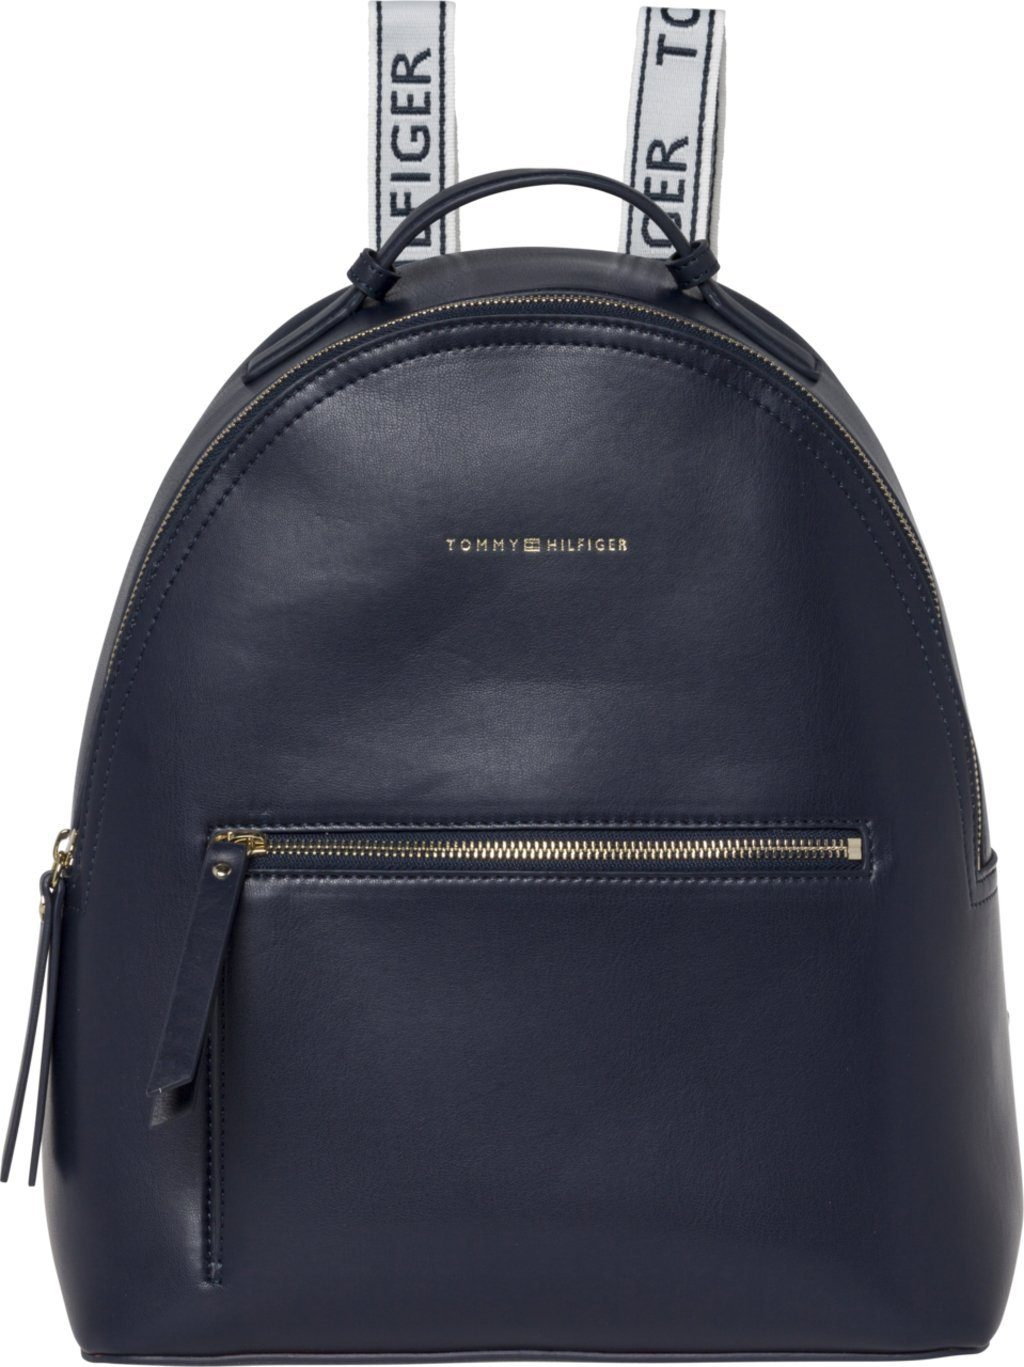 Tommy Hilfiger Tasche »ICONIC TOMMY BACKPACK CB«